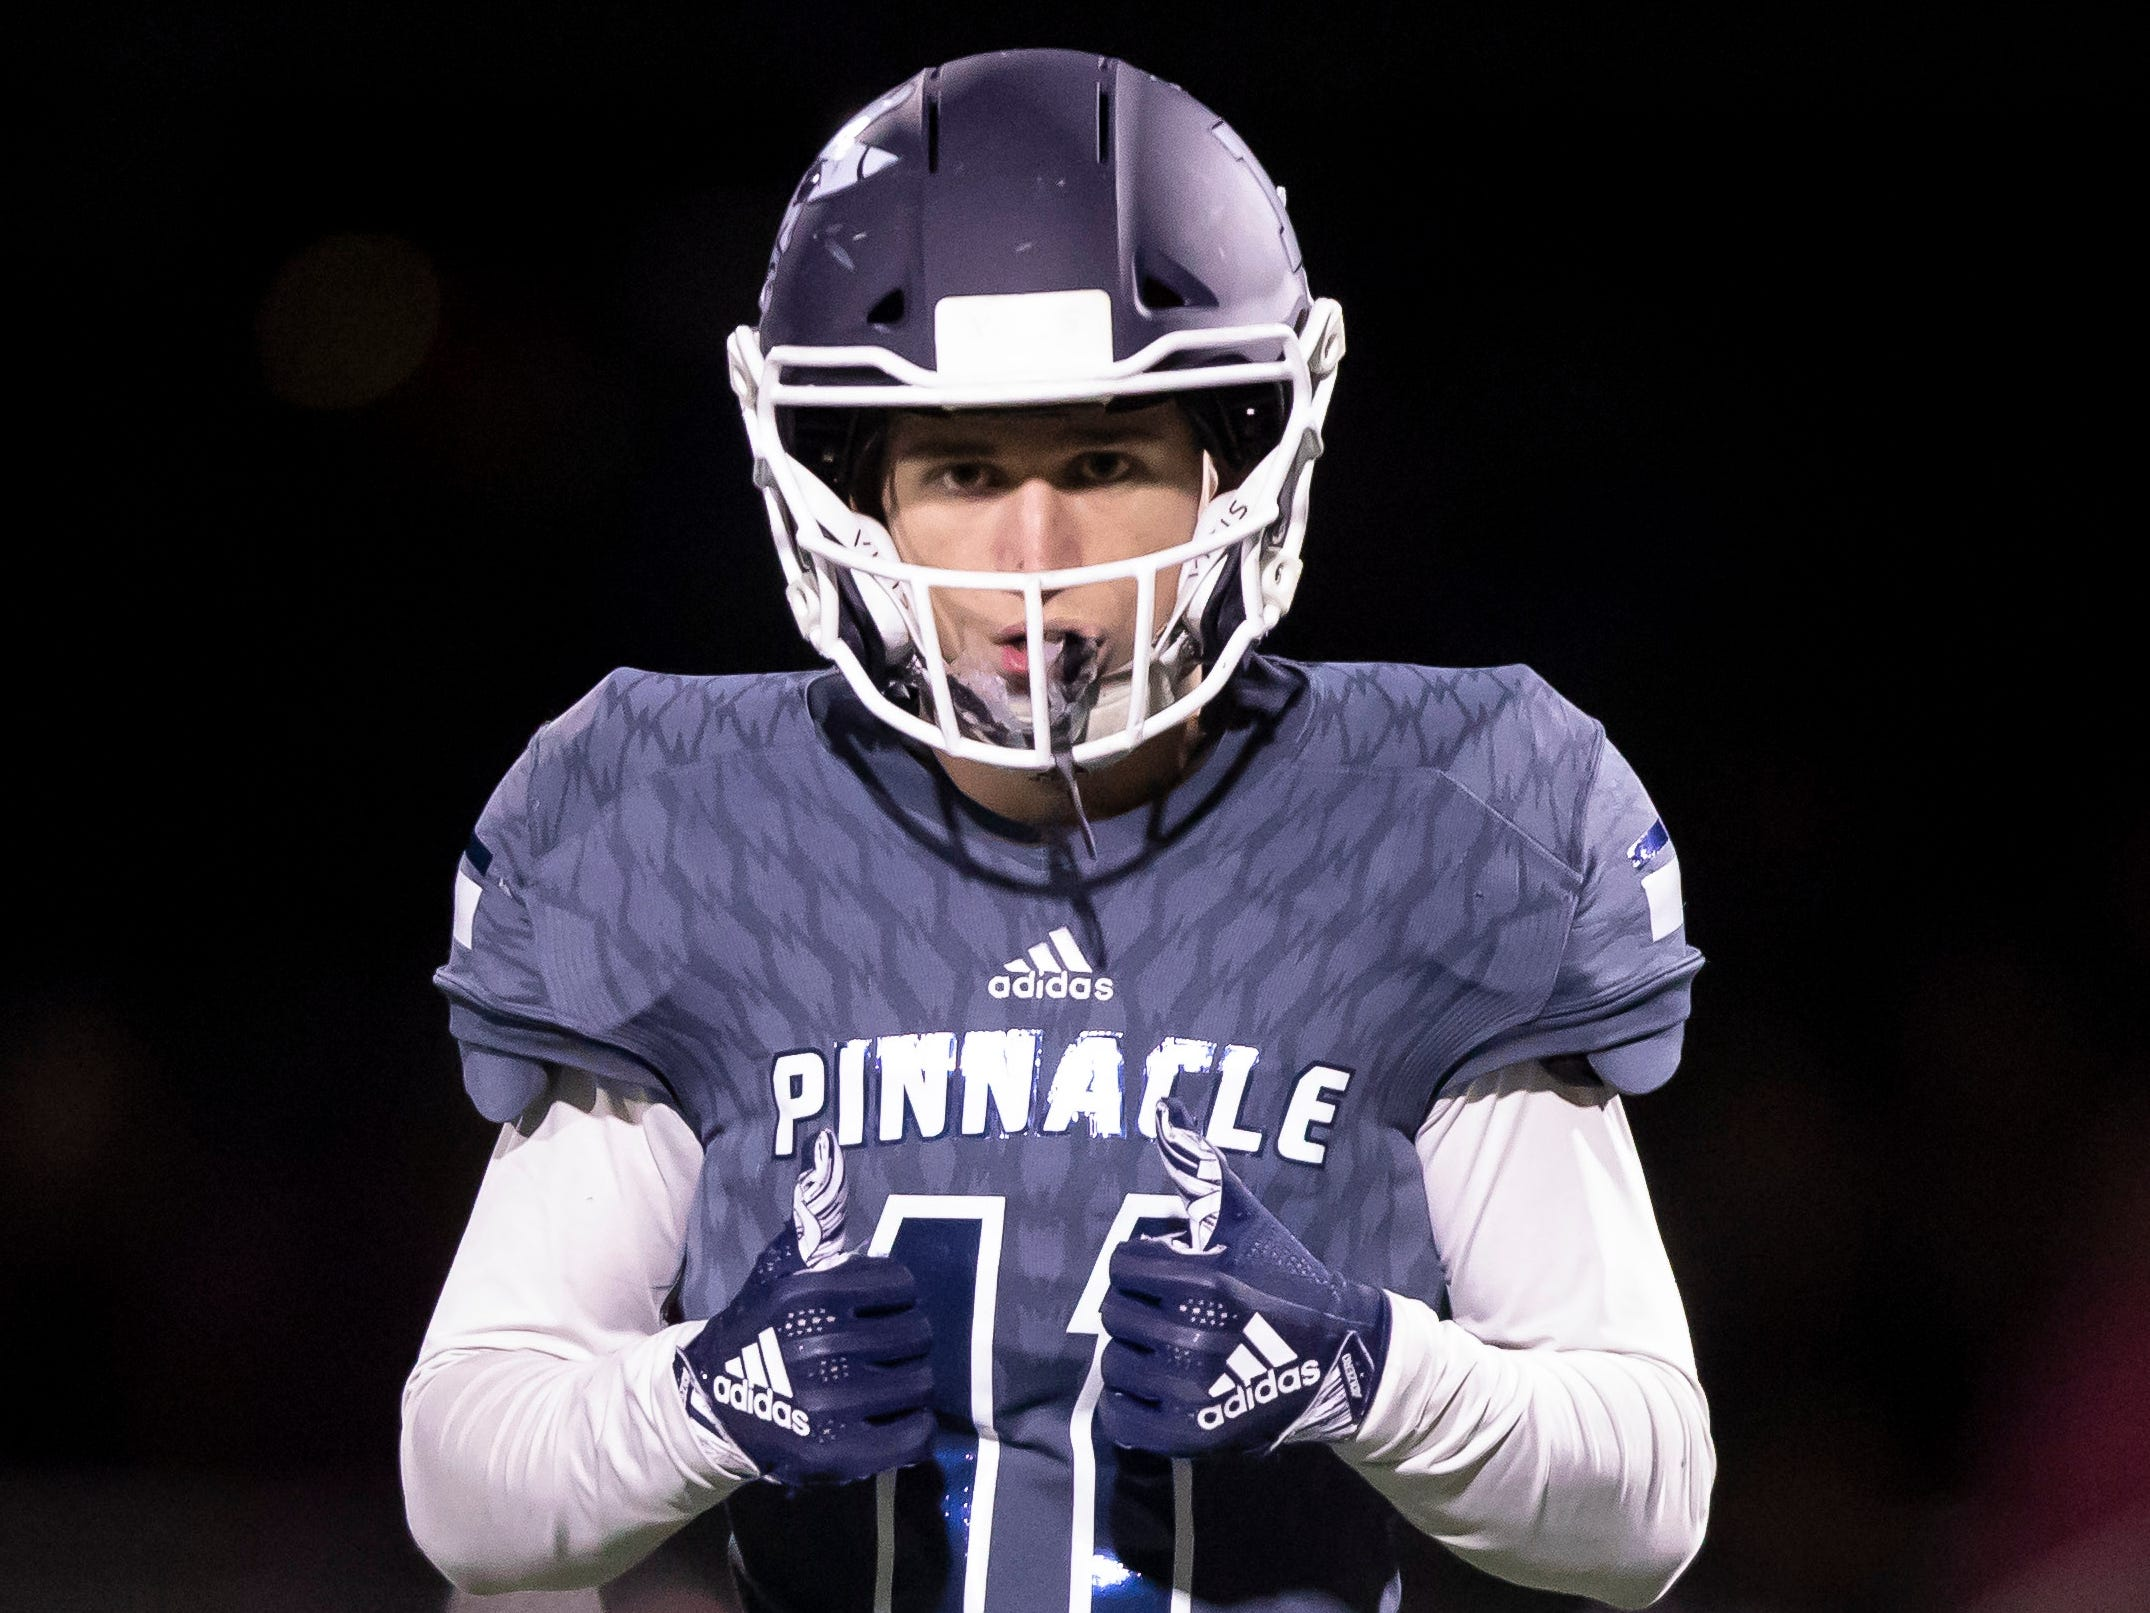 Senior defensive back Kyle Bryant (11) of the Pinnacle Pioneers during the playoff game against the Red Mountain Mountain Lions at Pinnacle High School on Friday, November 9, 2018 in Phoenix, Arizona. #azhsfb